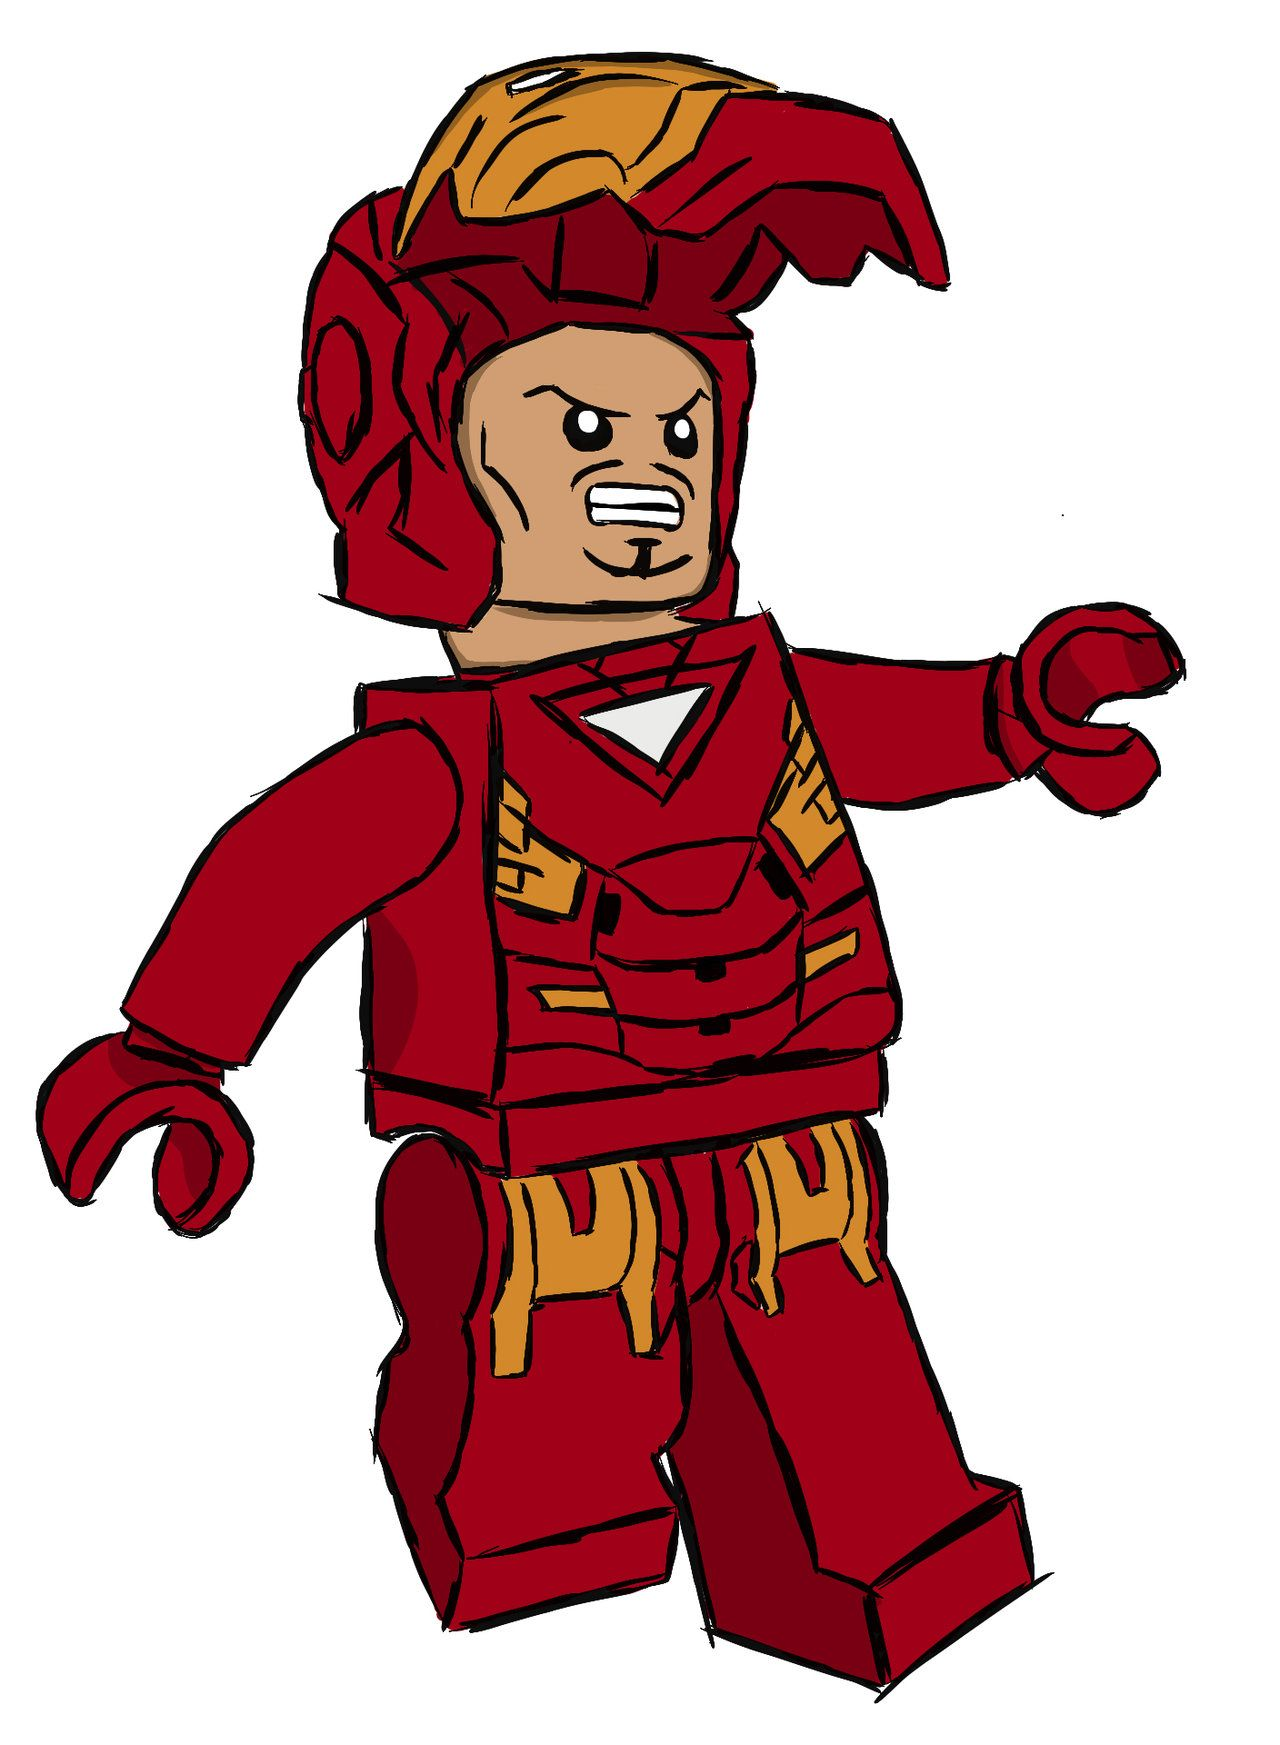 Lego Iron Man Drawing | Free download best Lego Iron Man